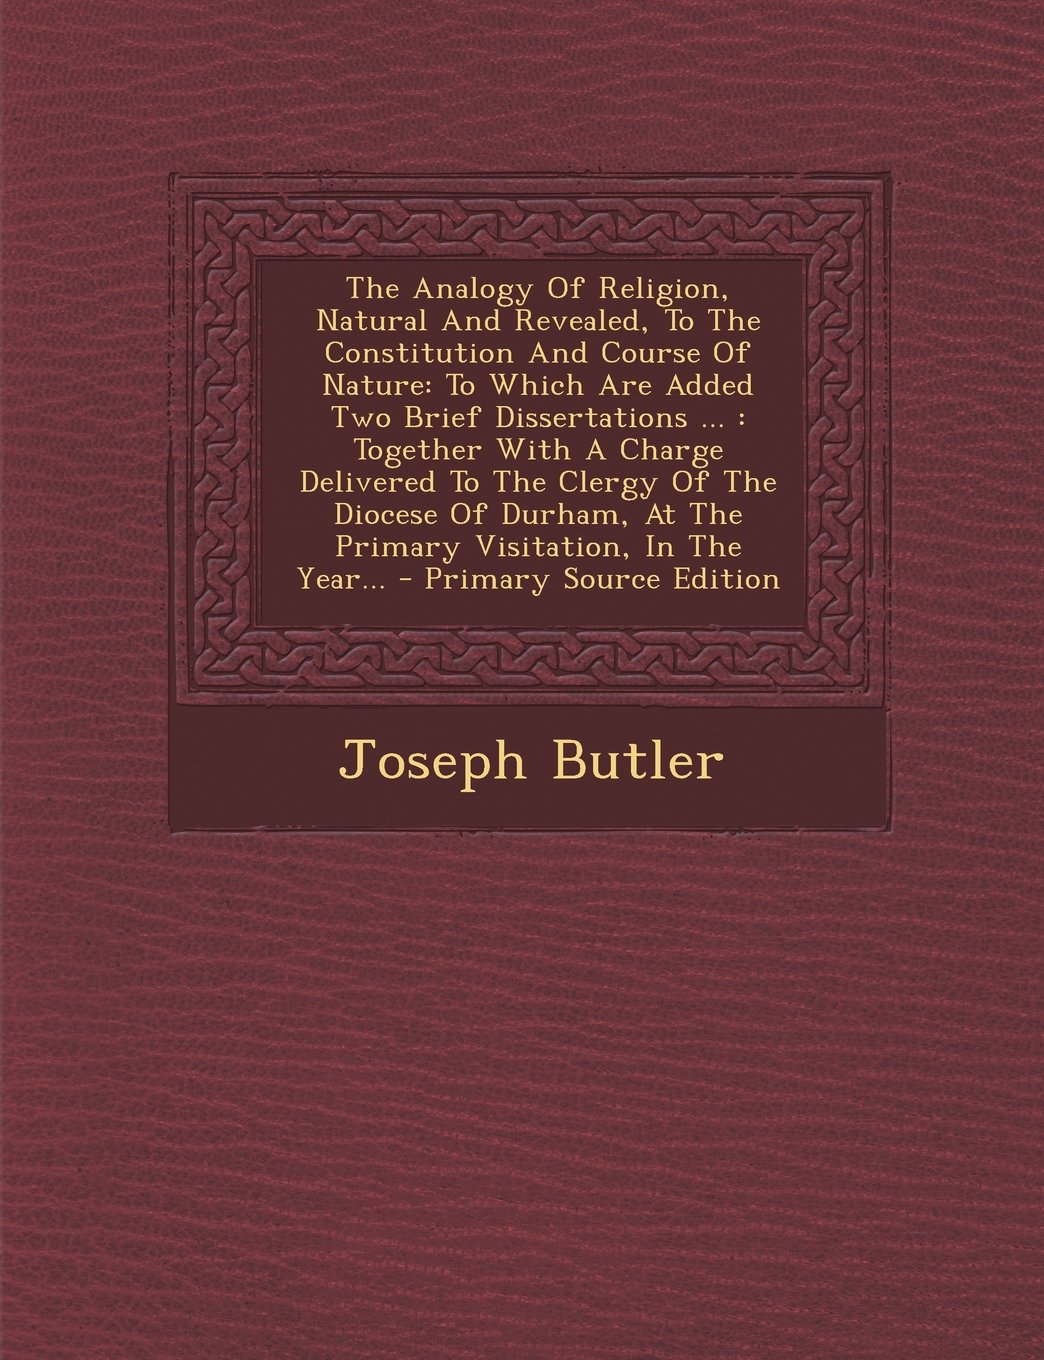 Download The Analogy of Religion, Natural and Revealed, to the Constitution and Course of Nature: To Which Are Added Two Brief Dissertations ...: Together with PDF